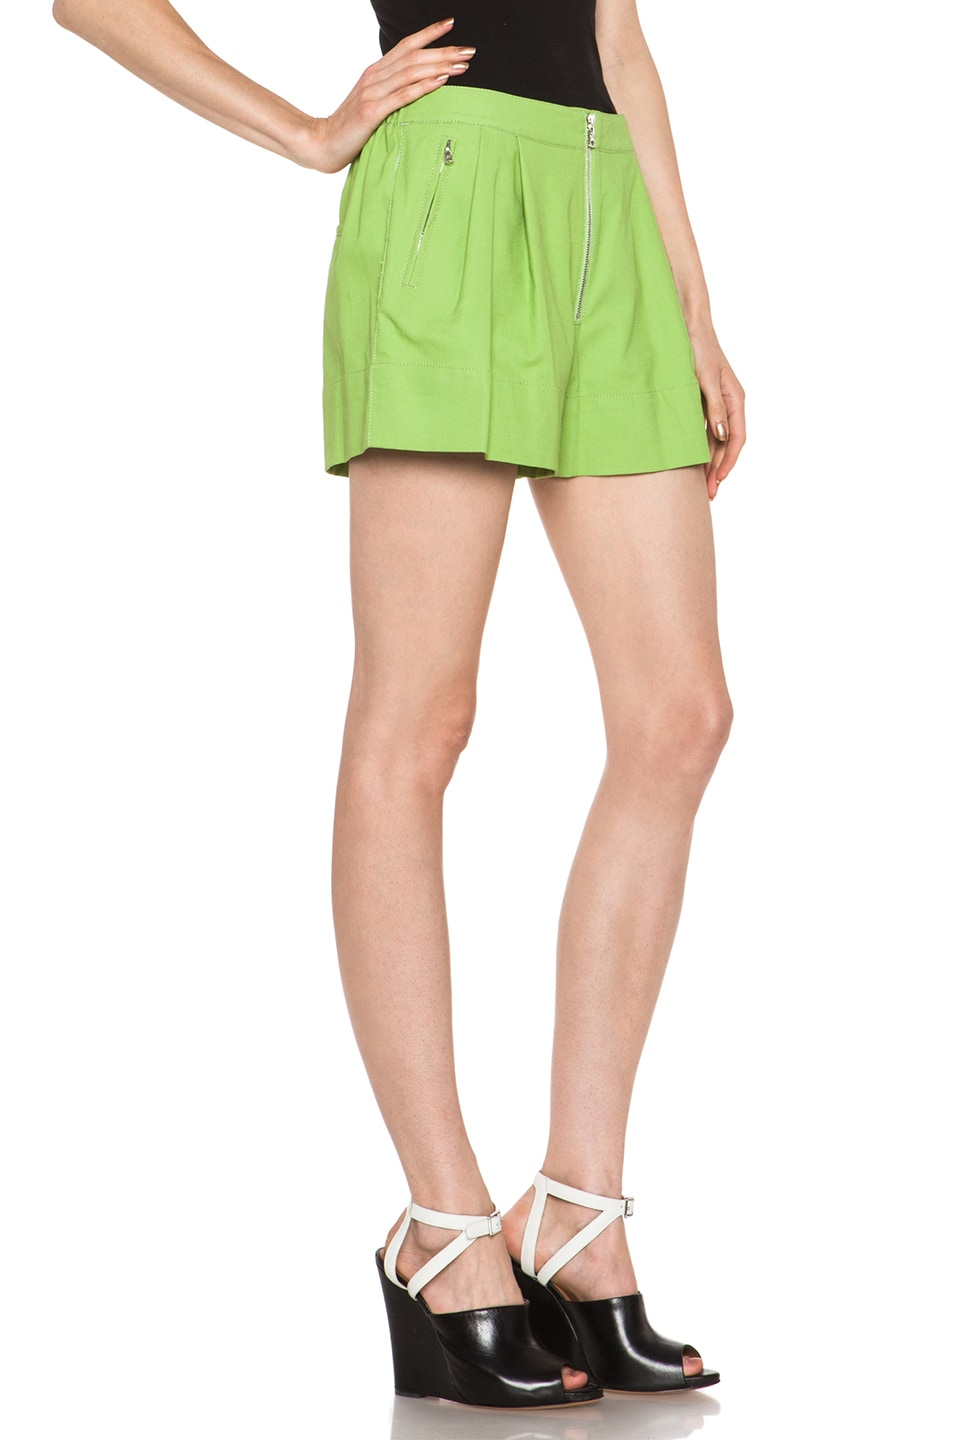 Image 3 of 3.1 phillip lim Bloomer Linen-Blend Short in Avocado Sld